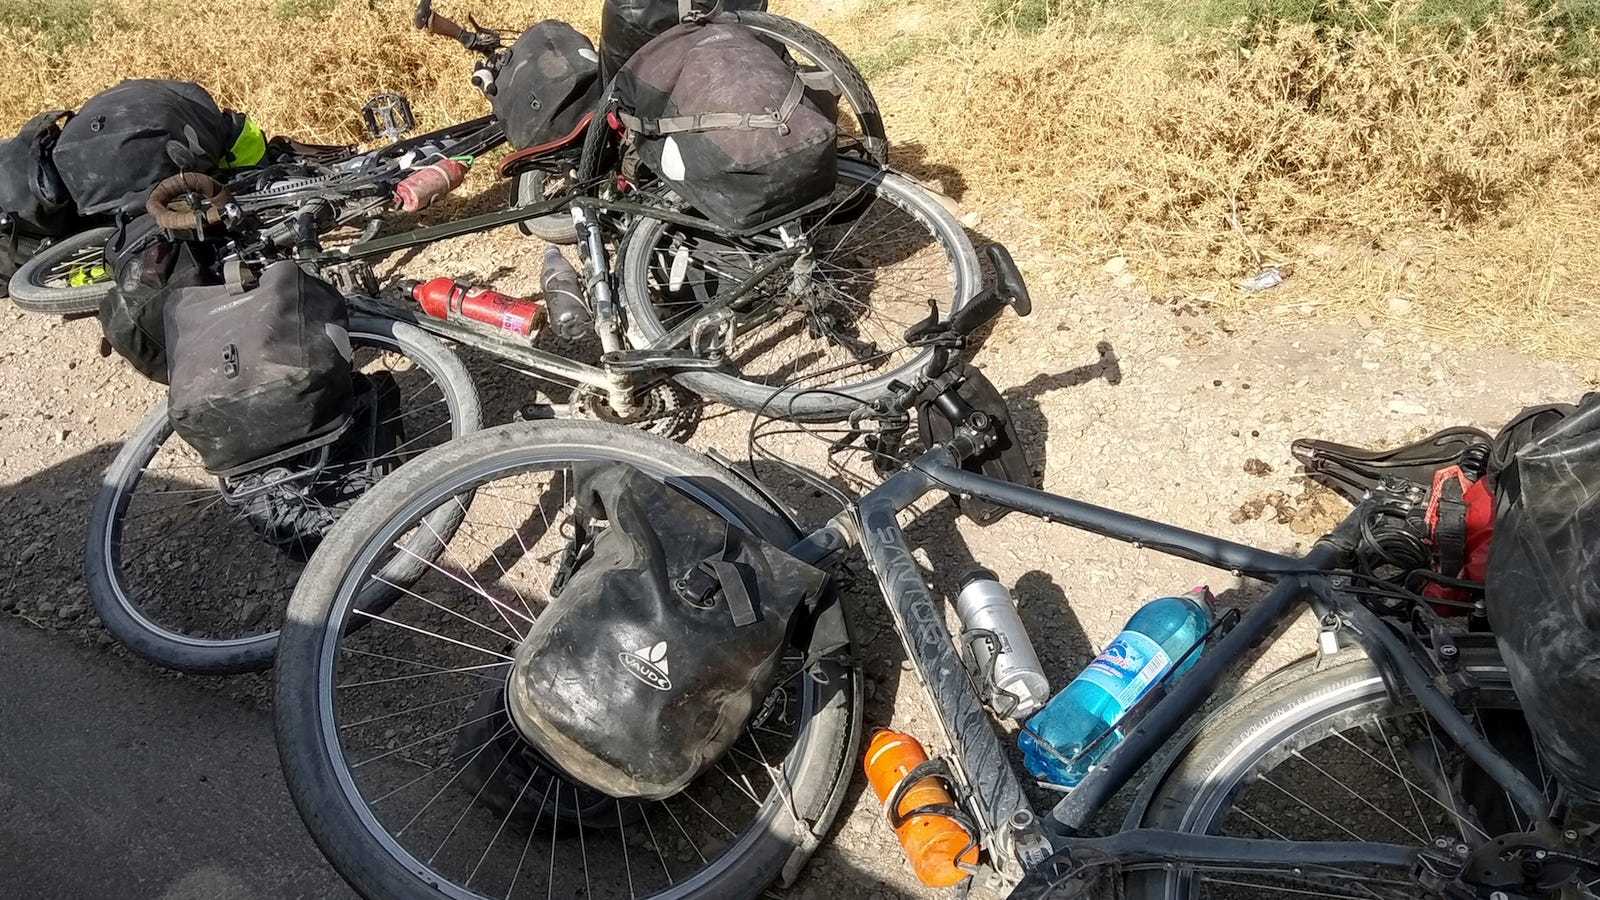 Two Americans Among Group Of Cyclists Murdered By ISIS Affiliates In